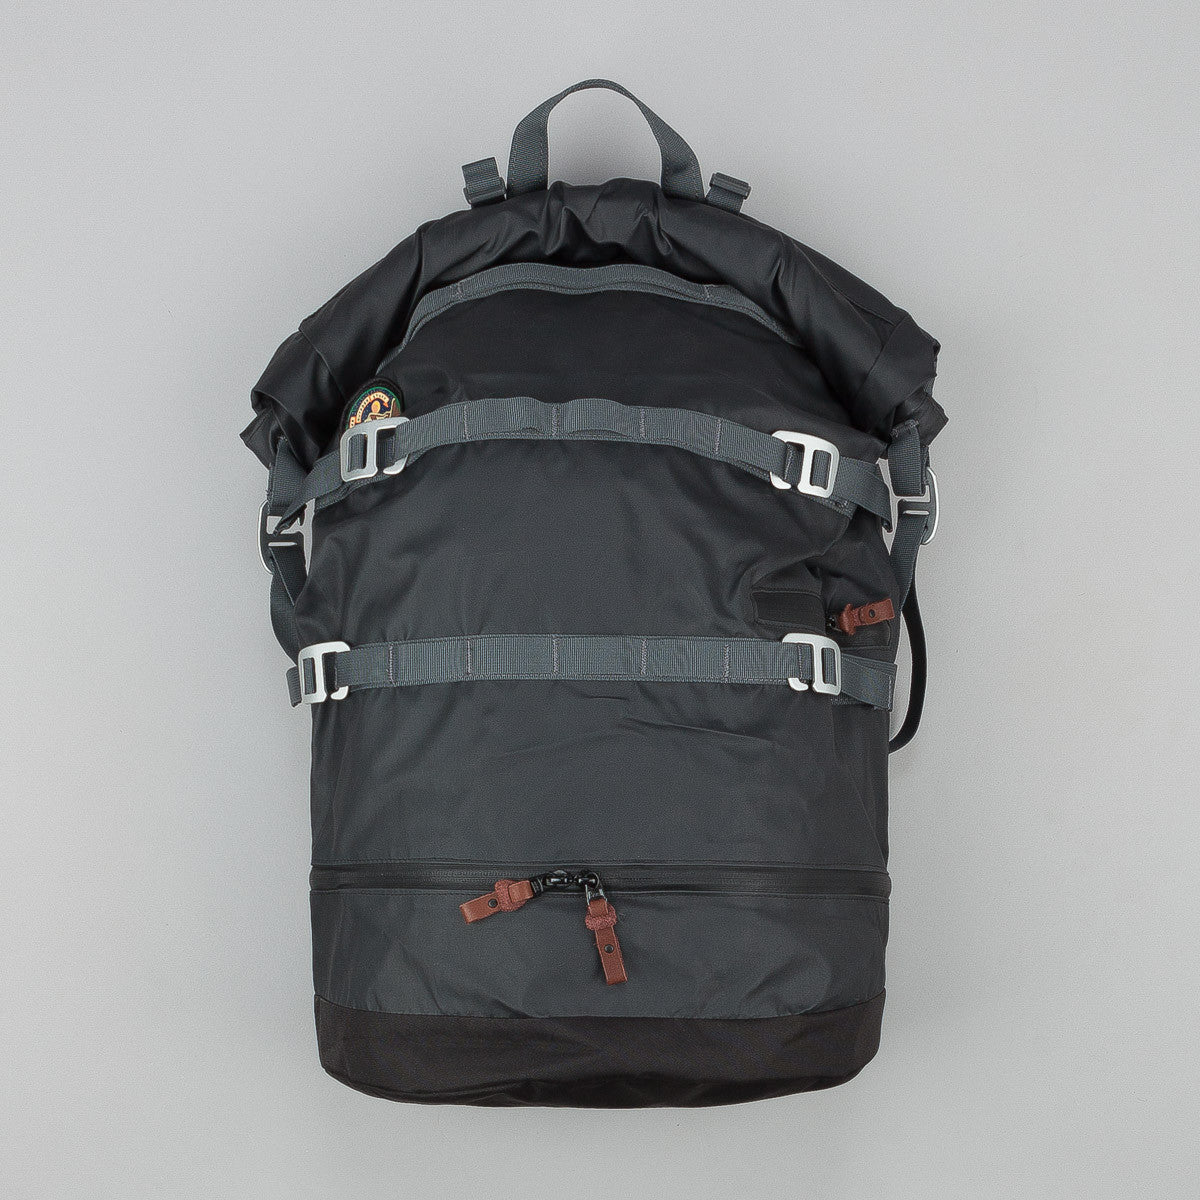 Poler High And Dry Pack 40L